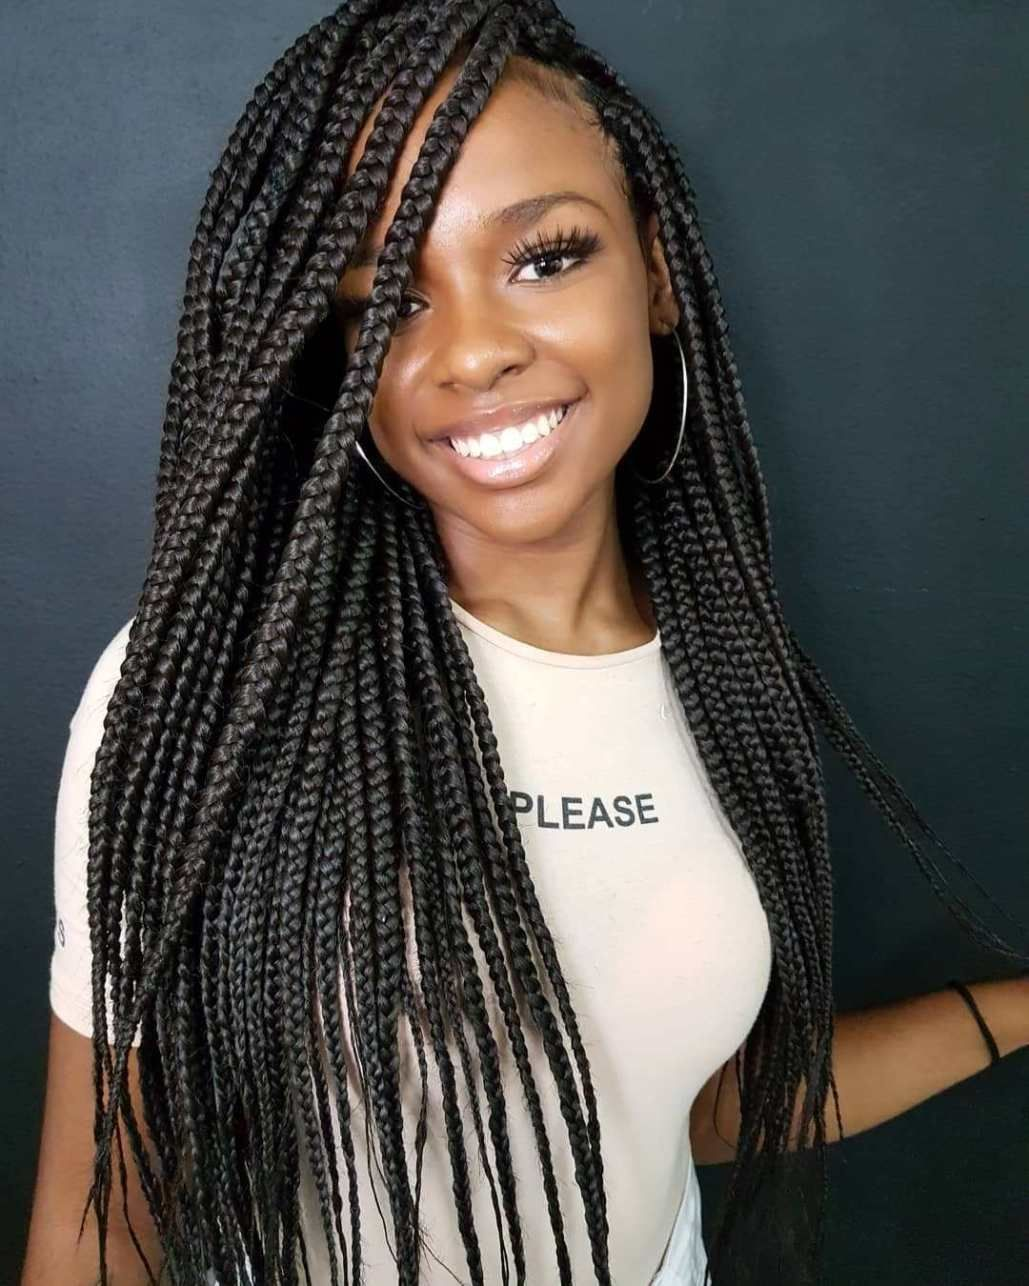 30 Trendy Box Braids Styles Stylists Recommend For 2020 Hair Adviser In 2020 Hair Styles Braid Styles Box Braids Styling